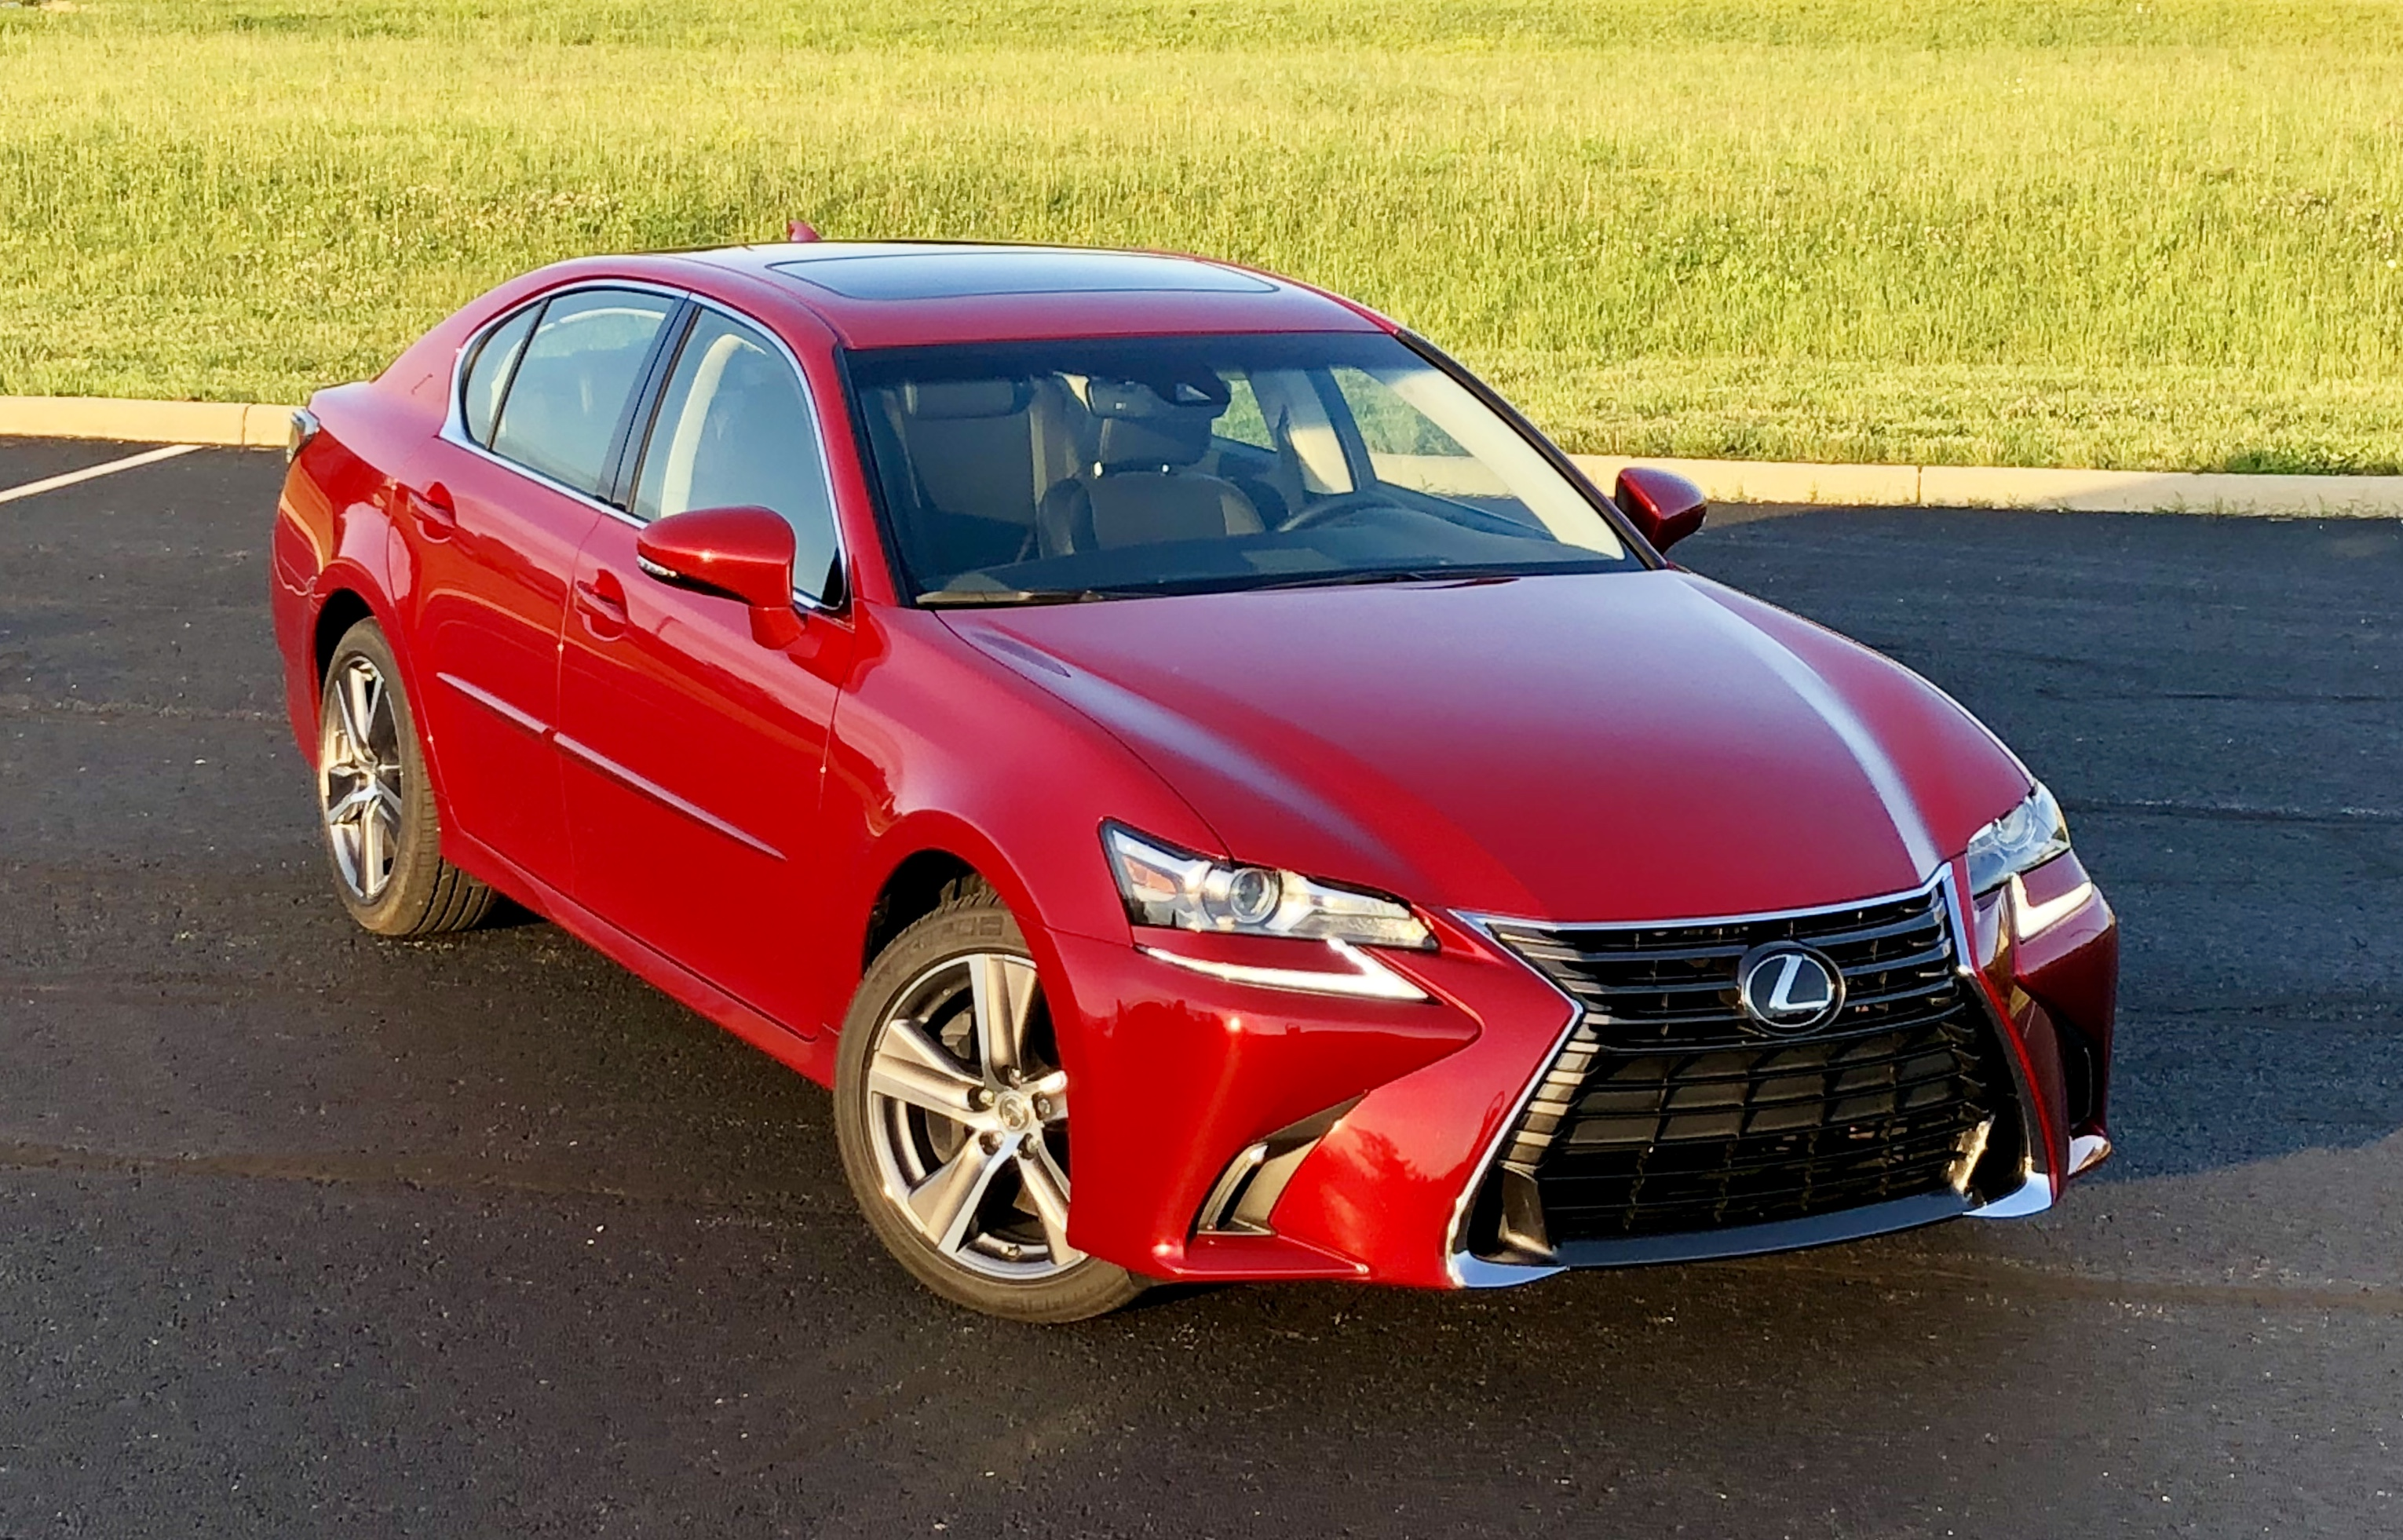 The Lexus GS 350 Is A Good Mid Size Luxury Sedan.